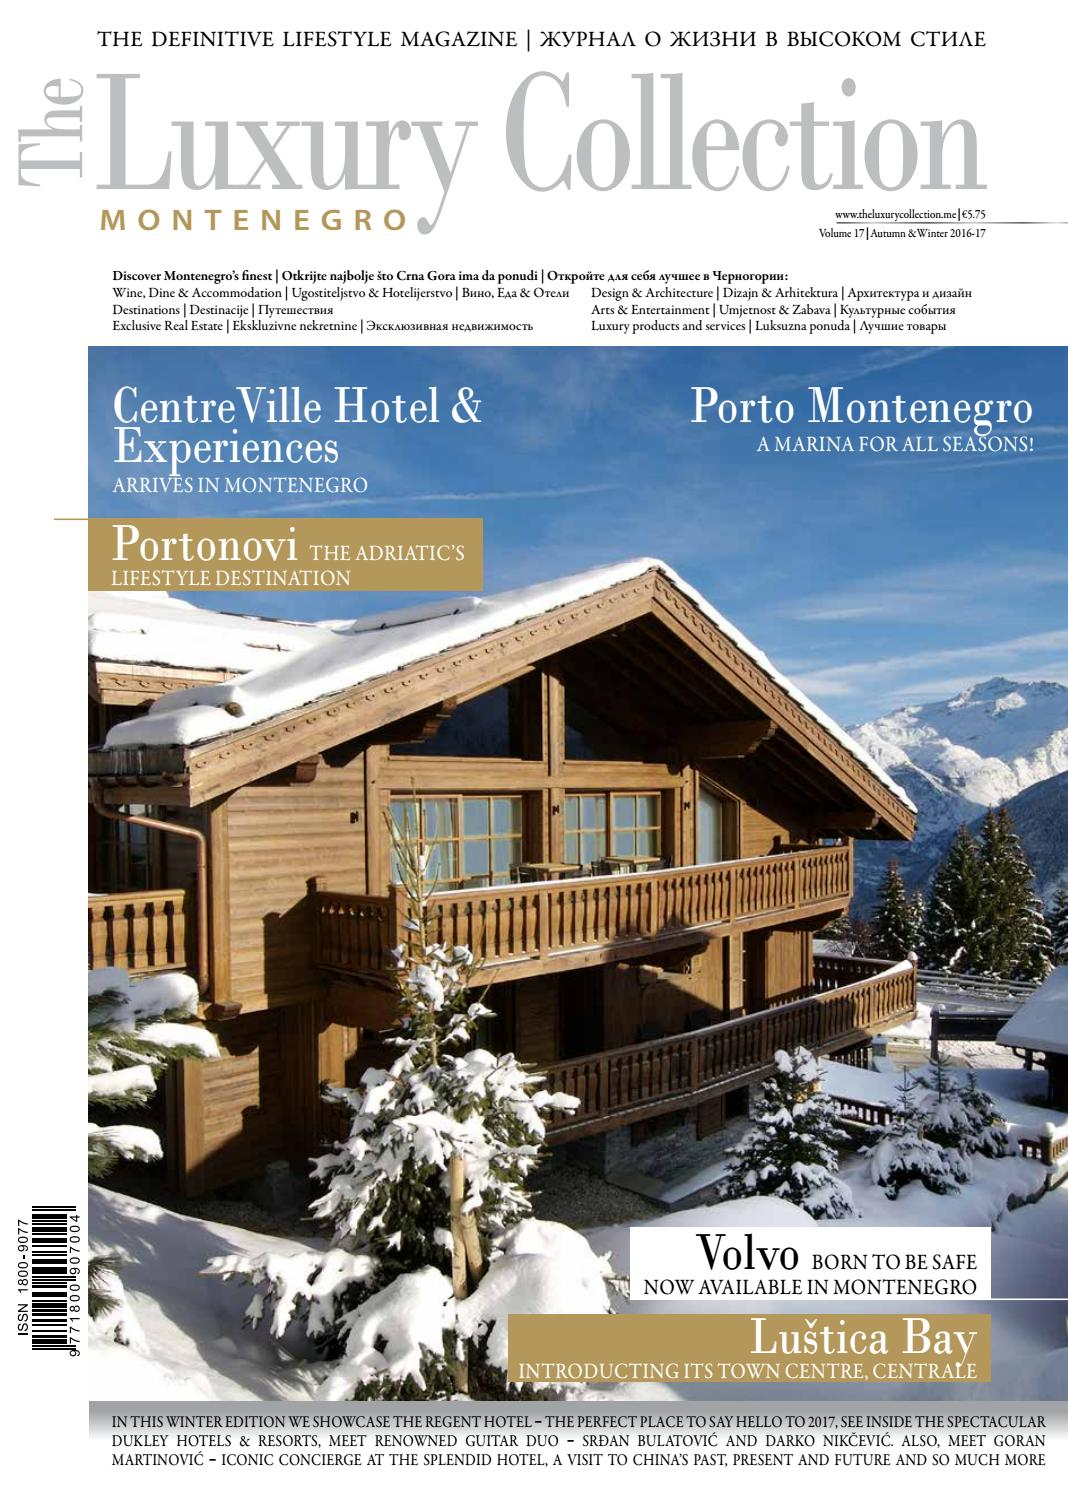 The Luxury Collection Montenegro Vol 17 By The Collection